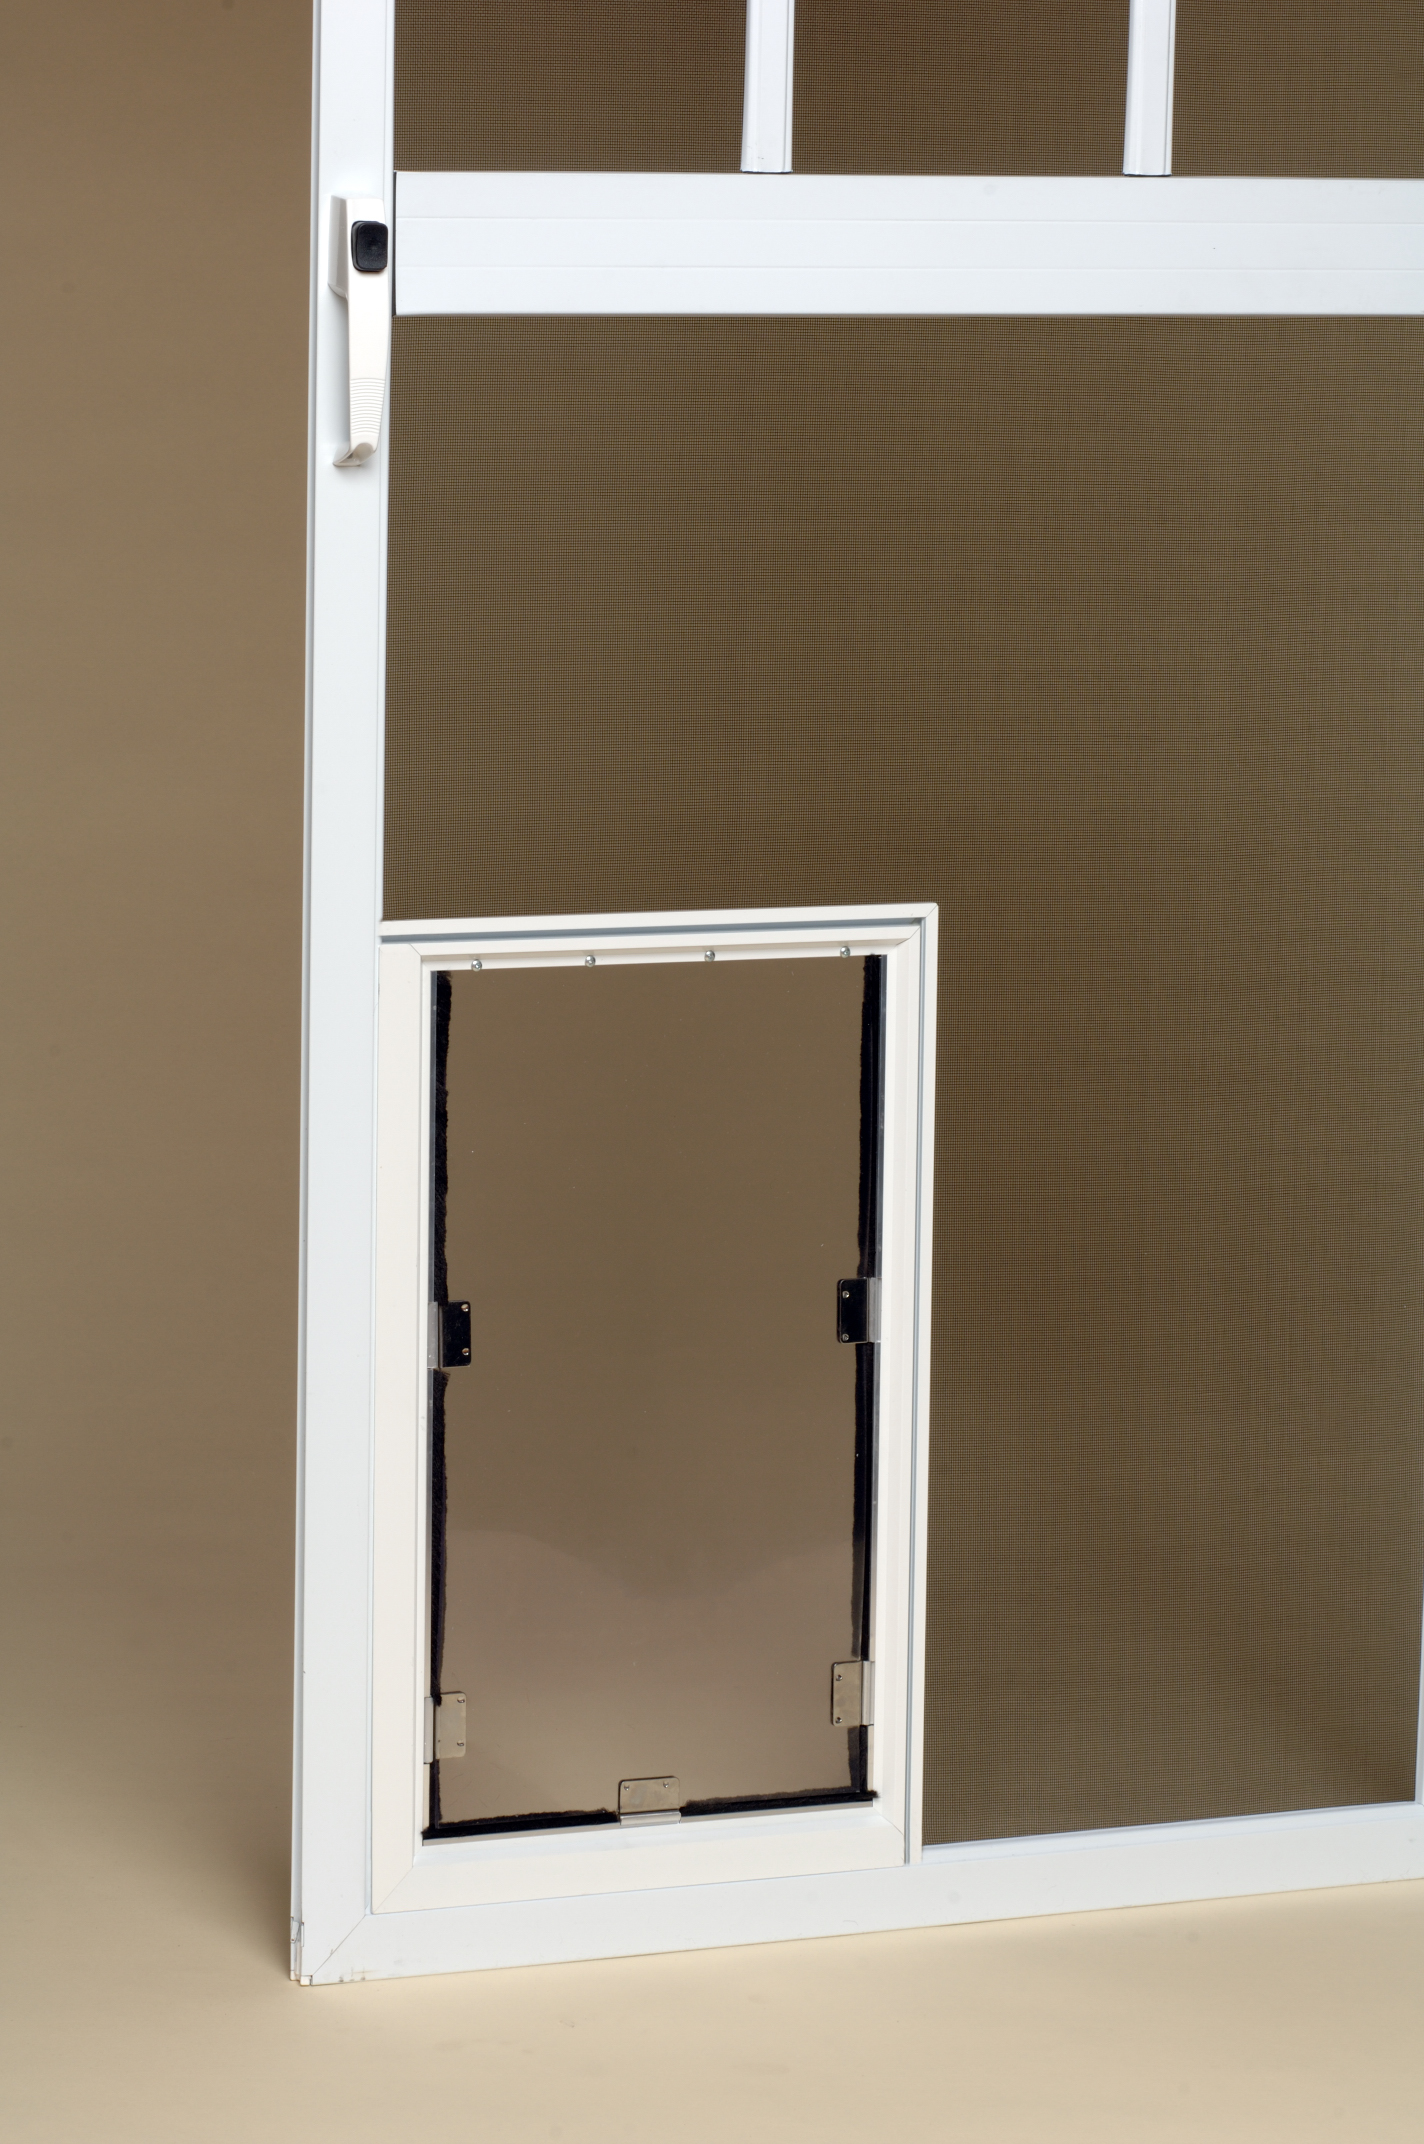 Merveilleux Screen Model Pet Door Installation (Standard Model)